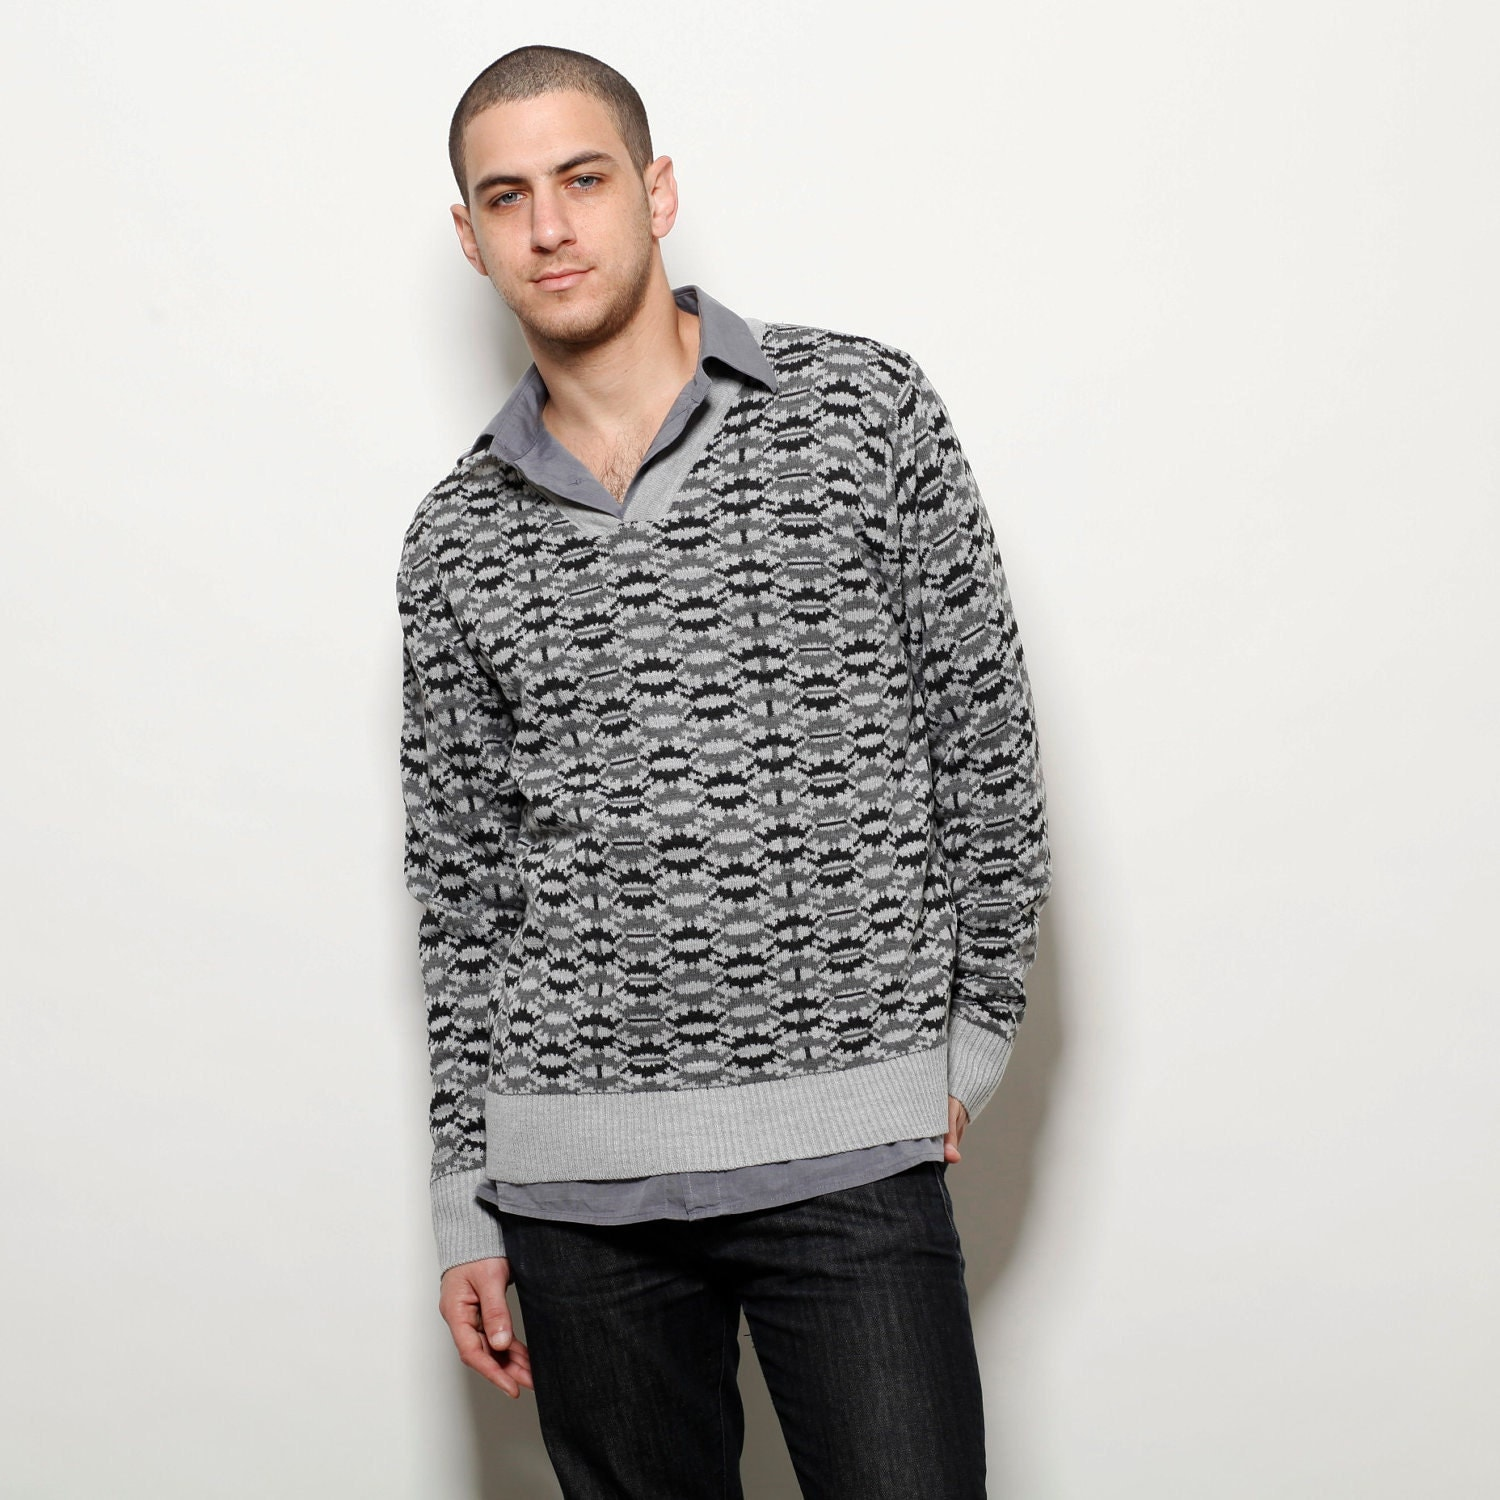 Knitting Mens Sweater : Grey sweater long sleeves knitted top v neck